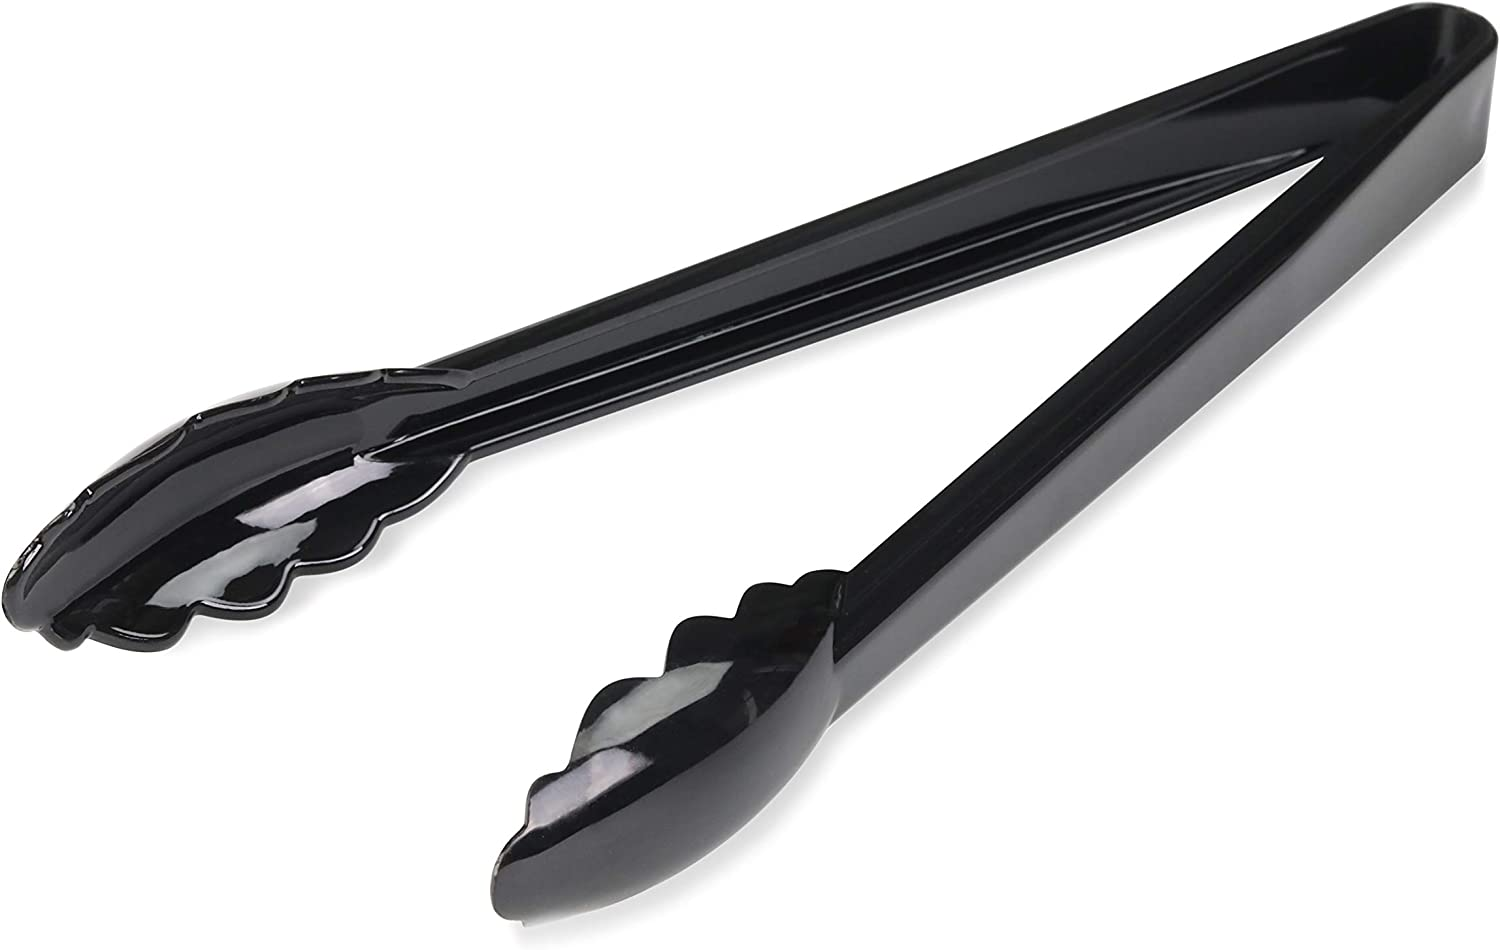 New Star Foodservice 35513 Utility Tong, High Heat Plastic, Scalloped, 12 inch, Set of 12, Black